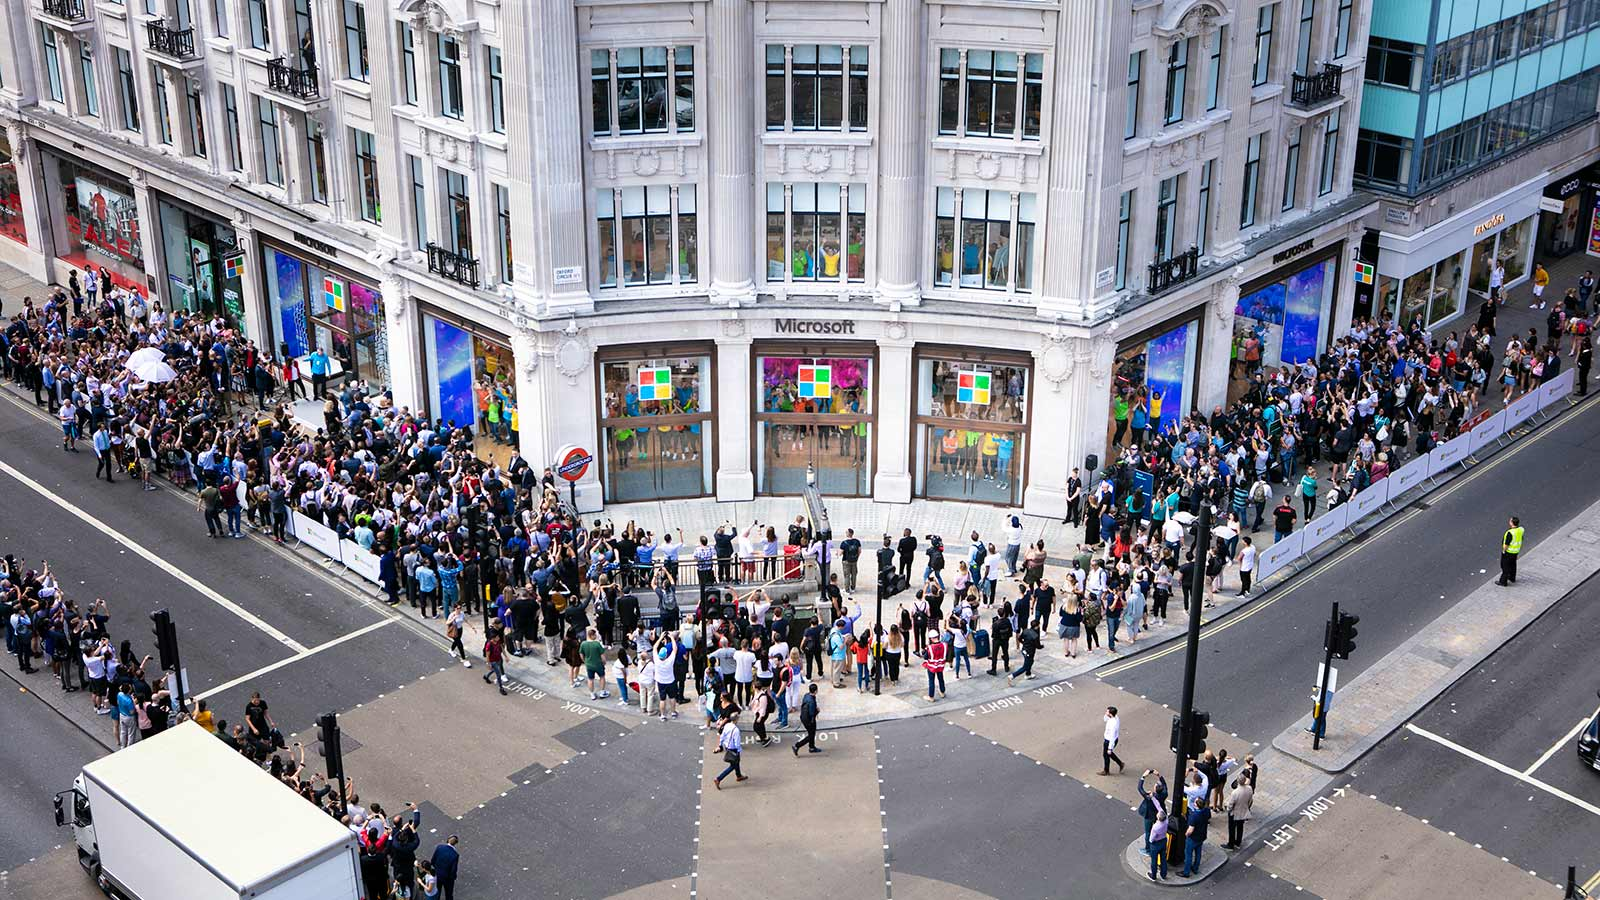 Microsoft flagship store - Oxford Street